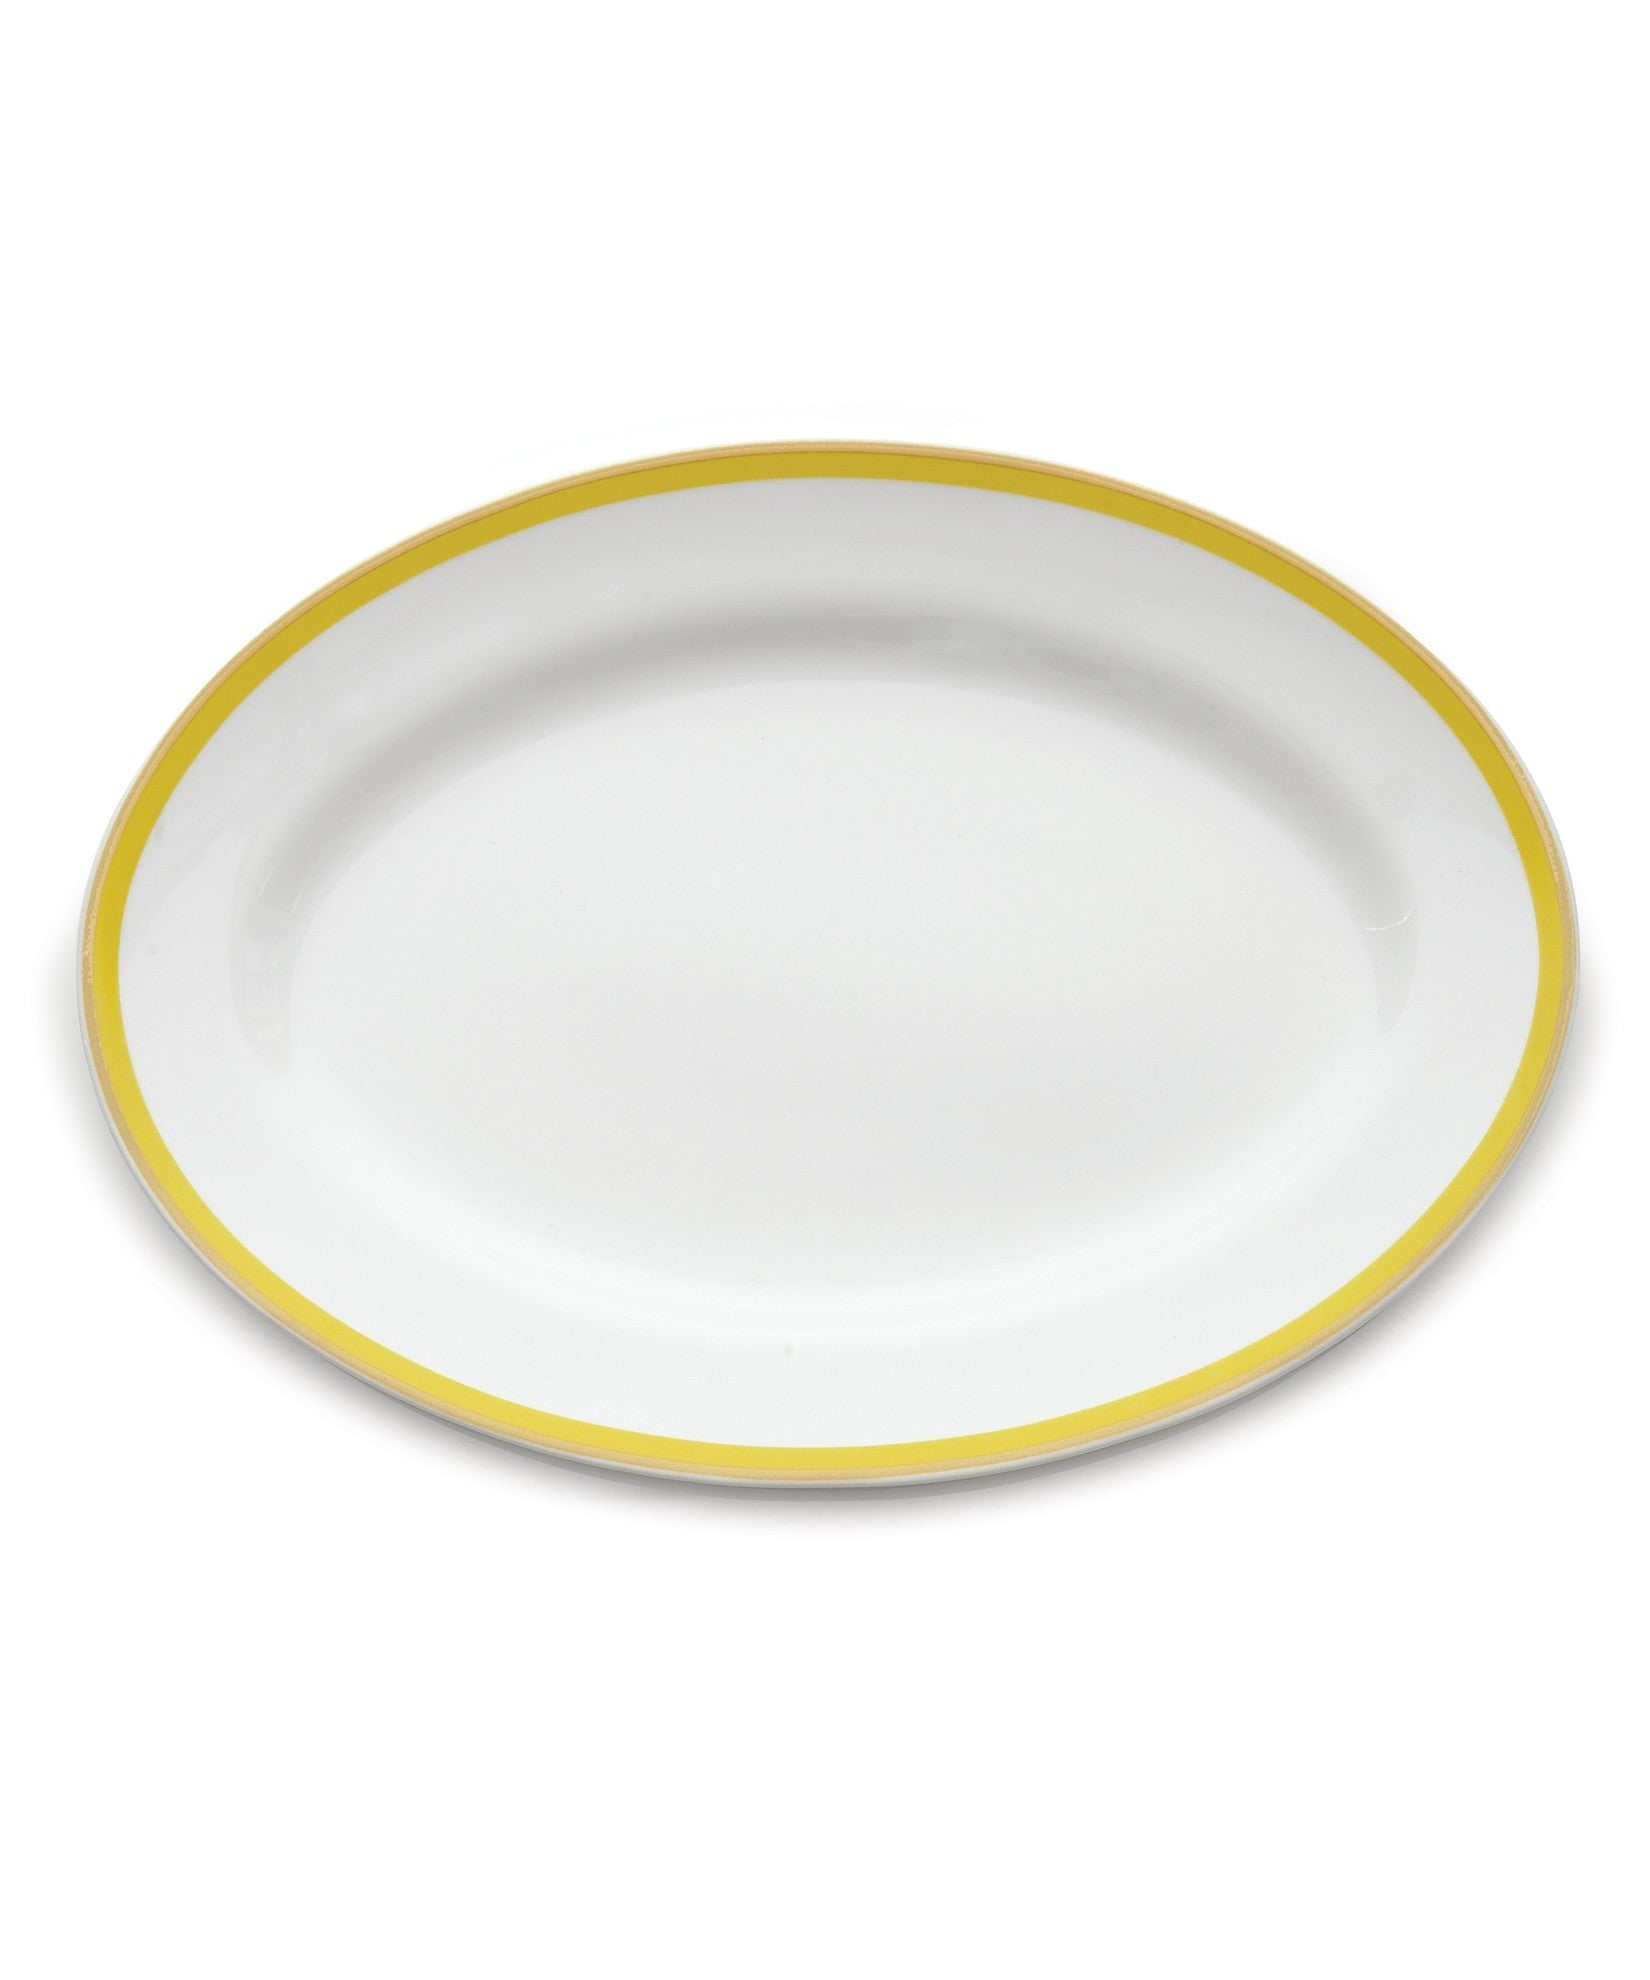 Latika Gold Oval Platter - Latika Gold Oval Platter